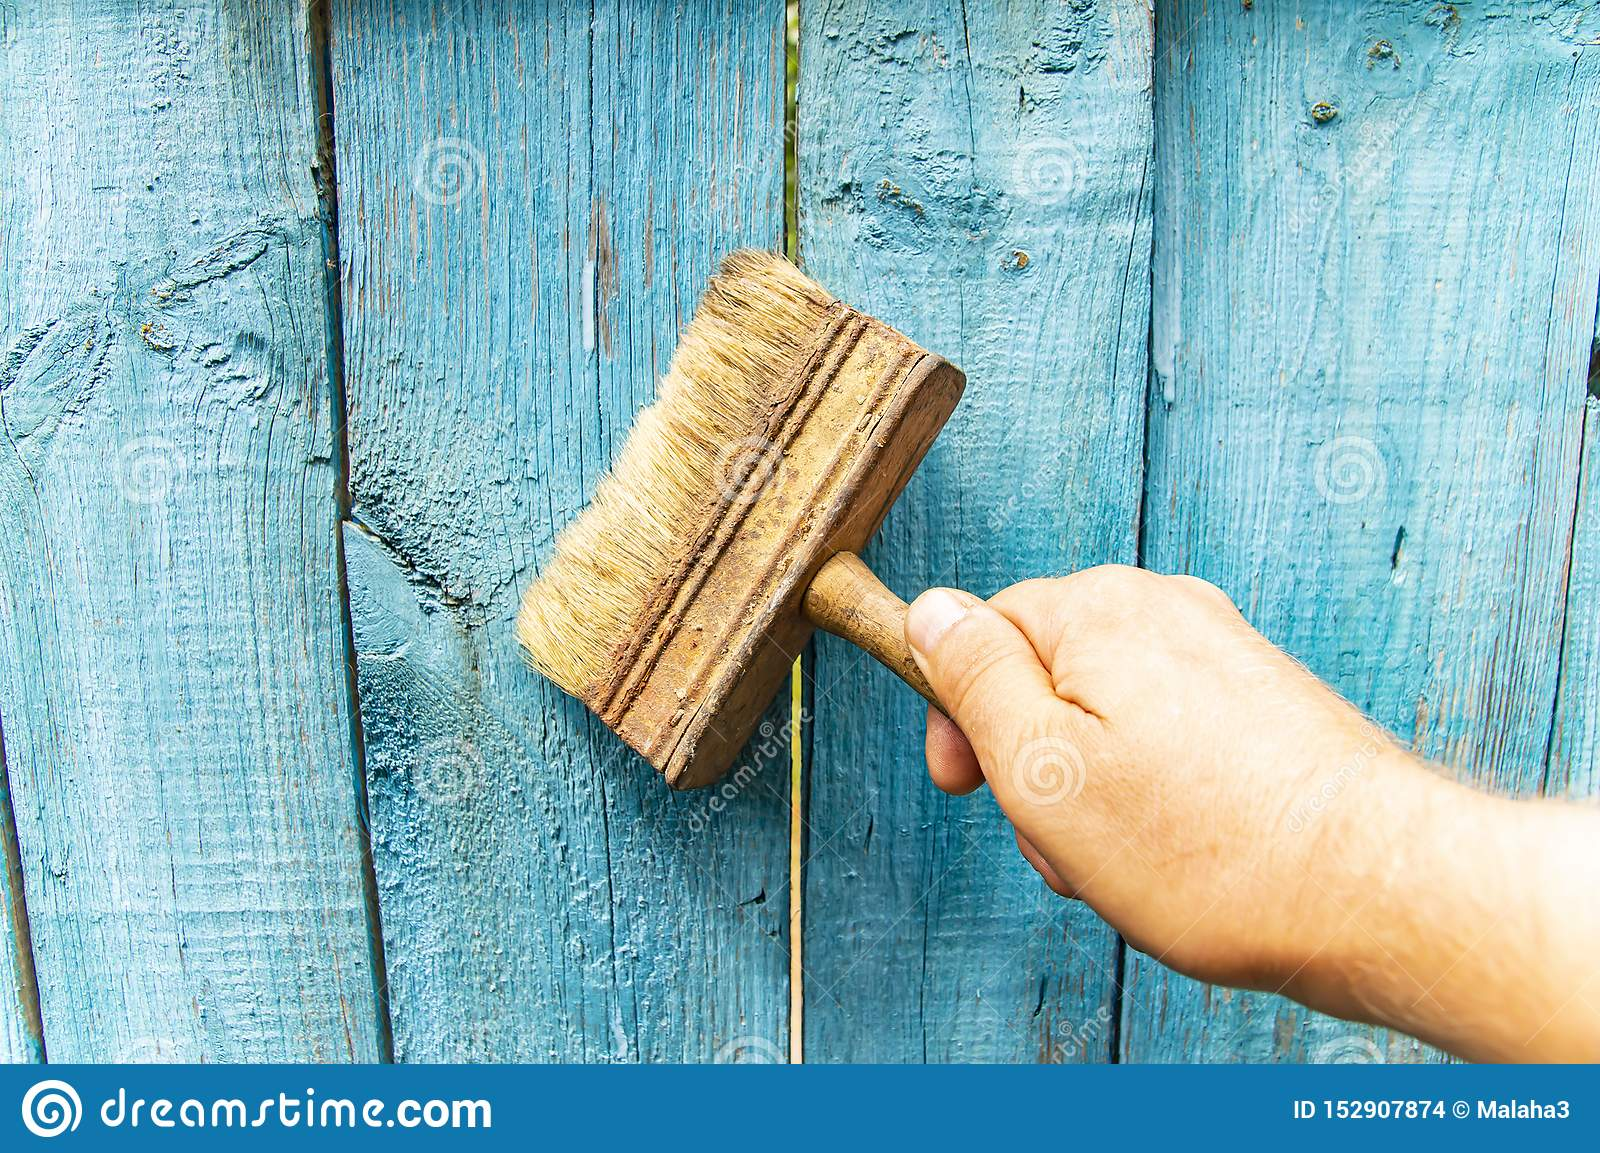 Brush in hand - painting a wooden fence